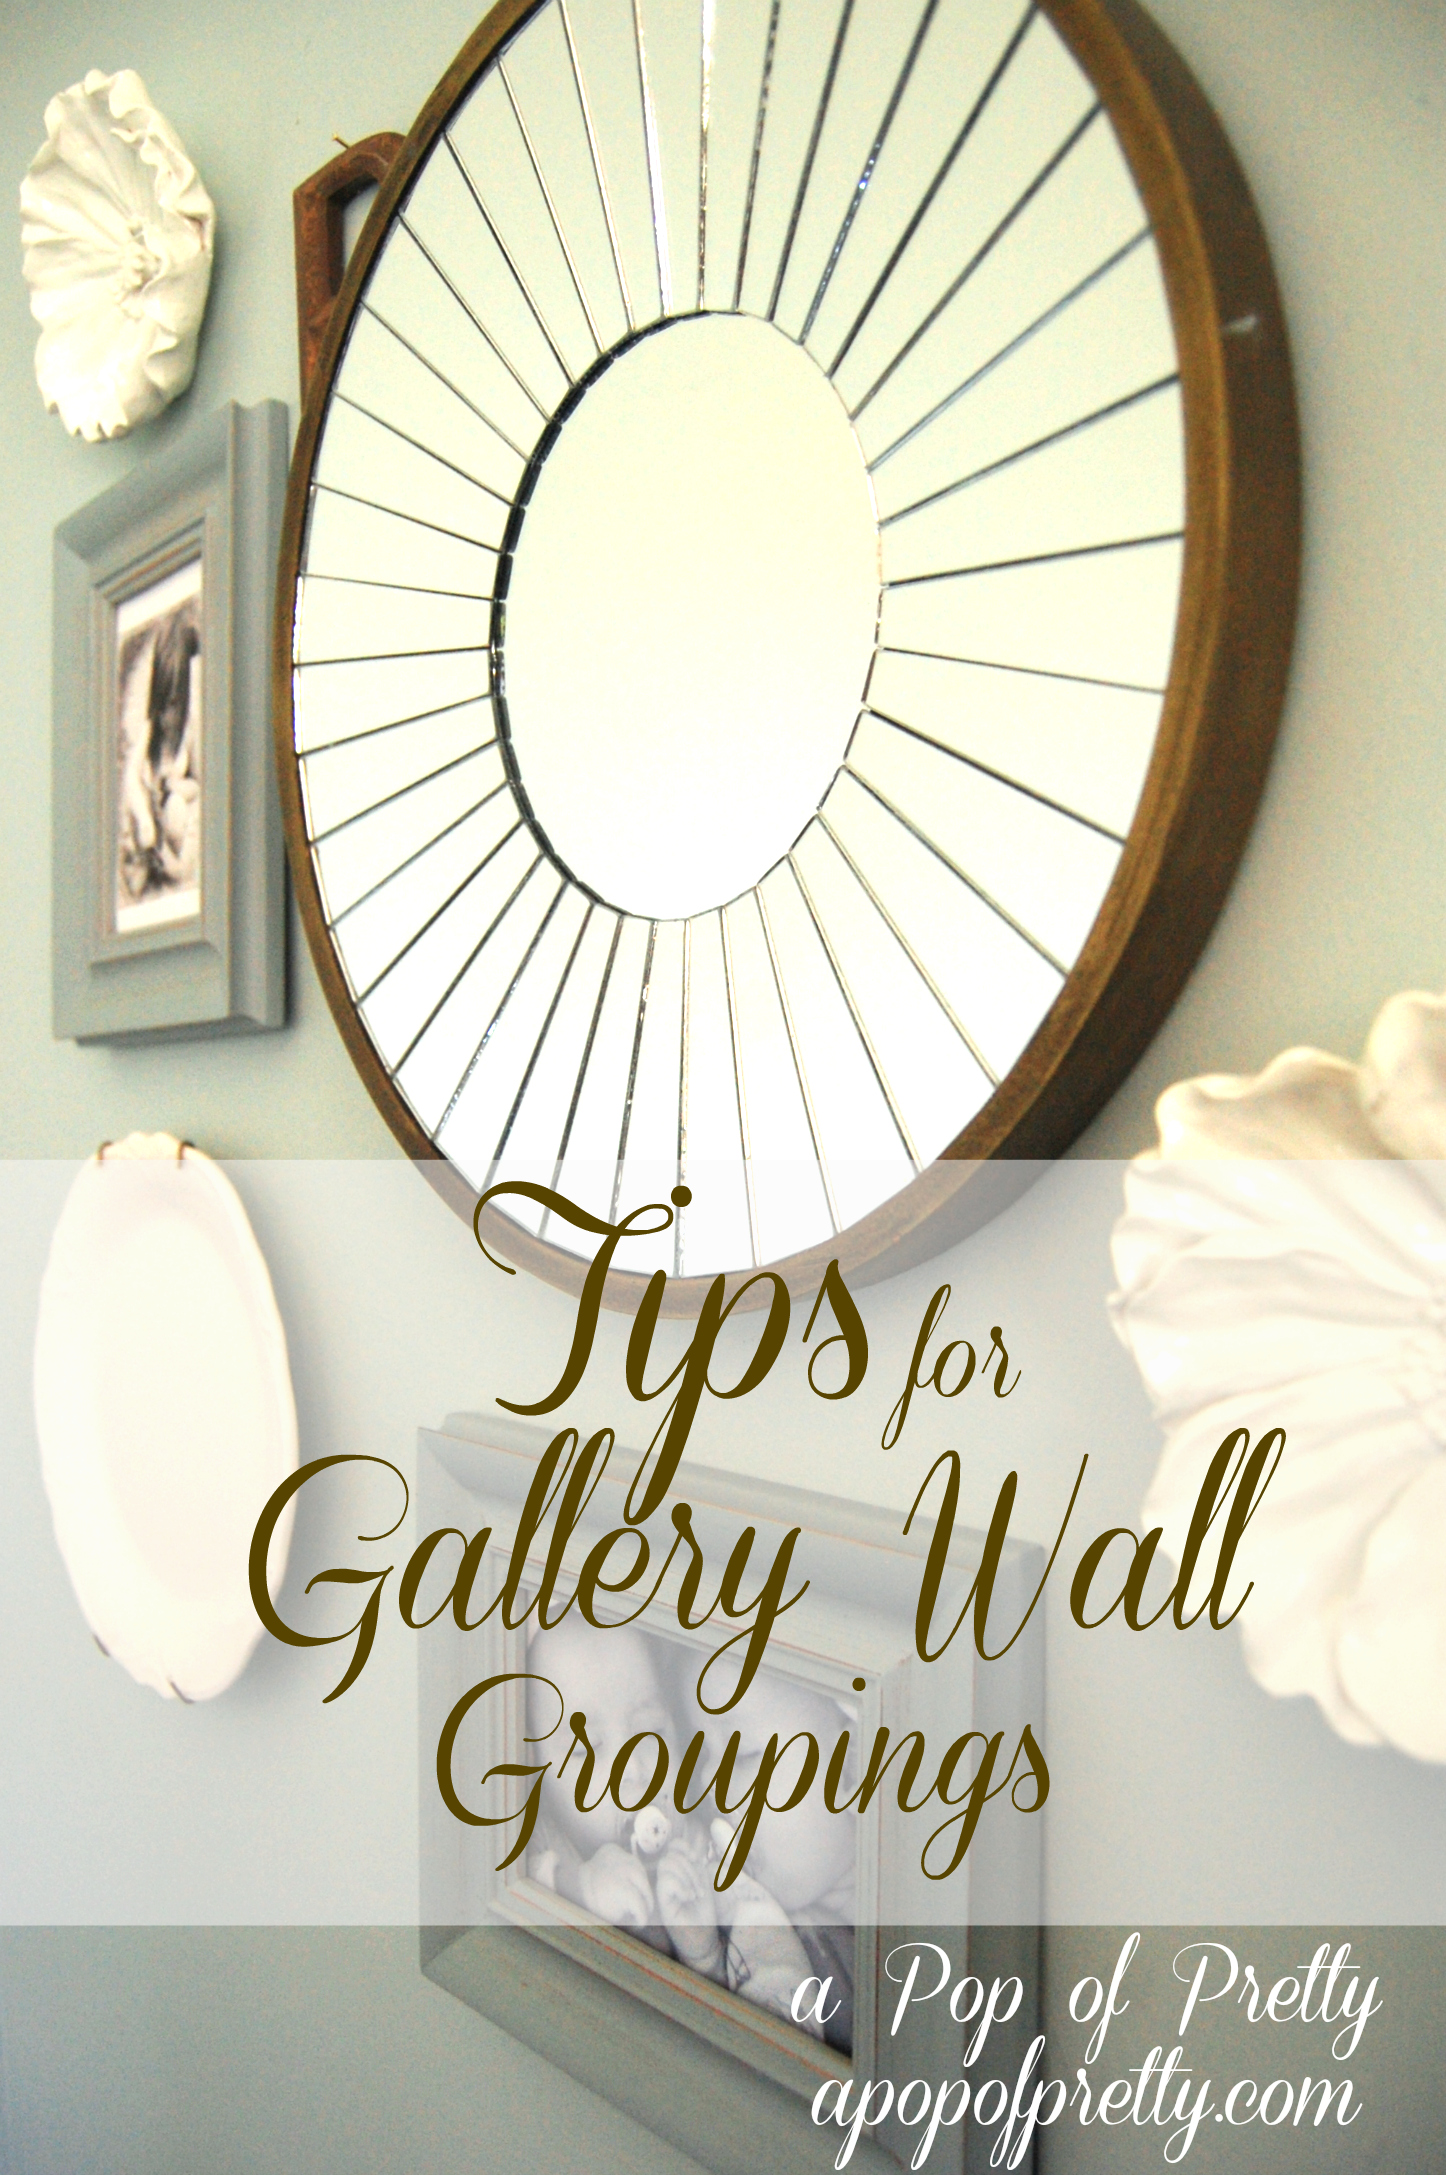 Diy Wall Art Idea 2 Group Things You Love Gallery Wall